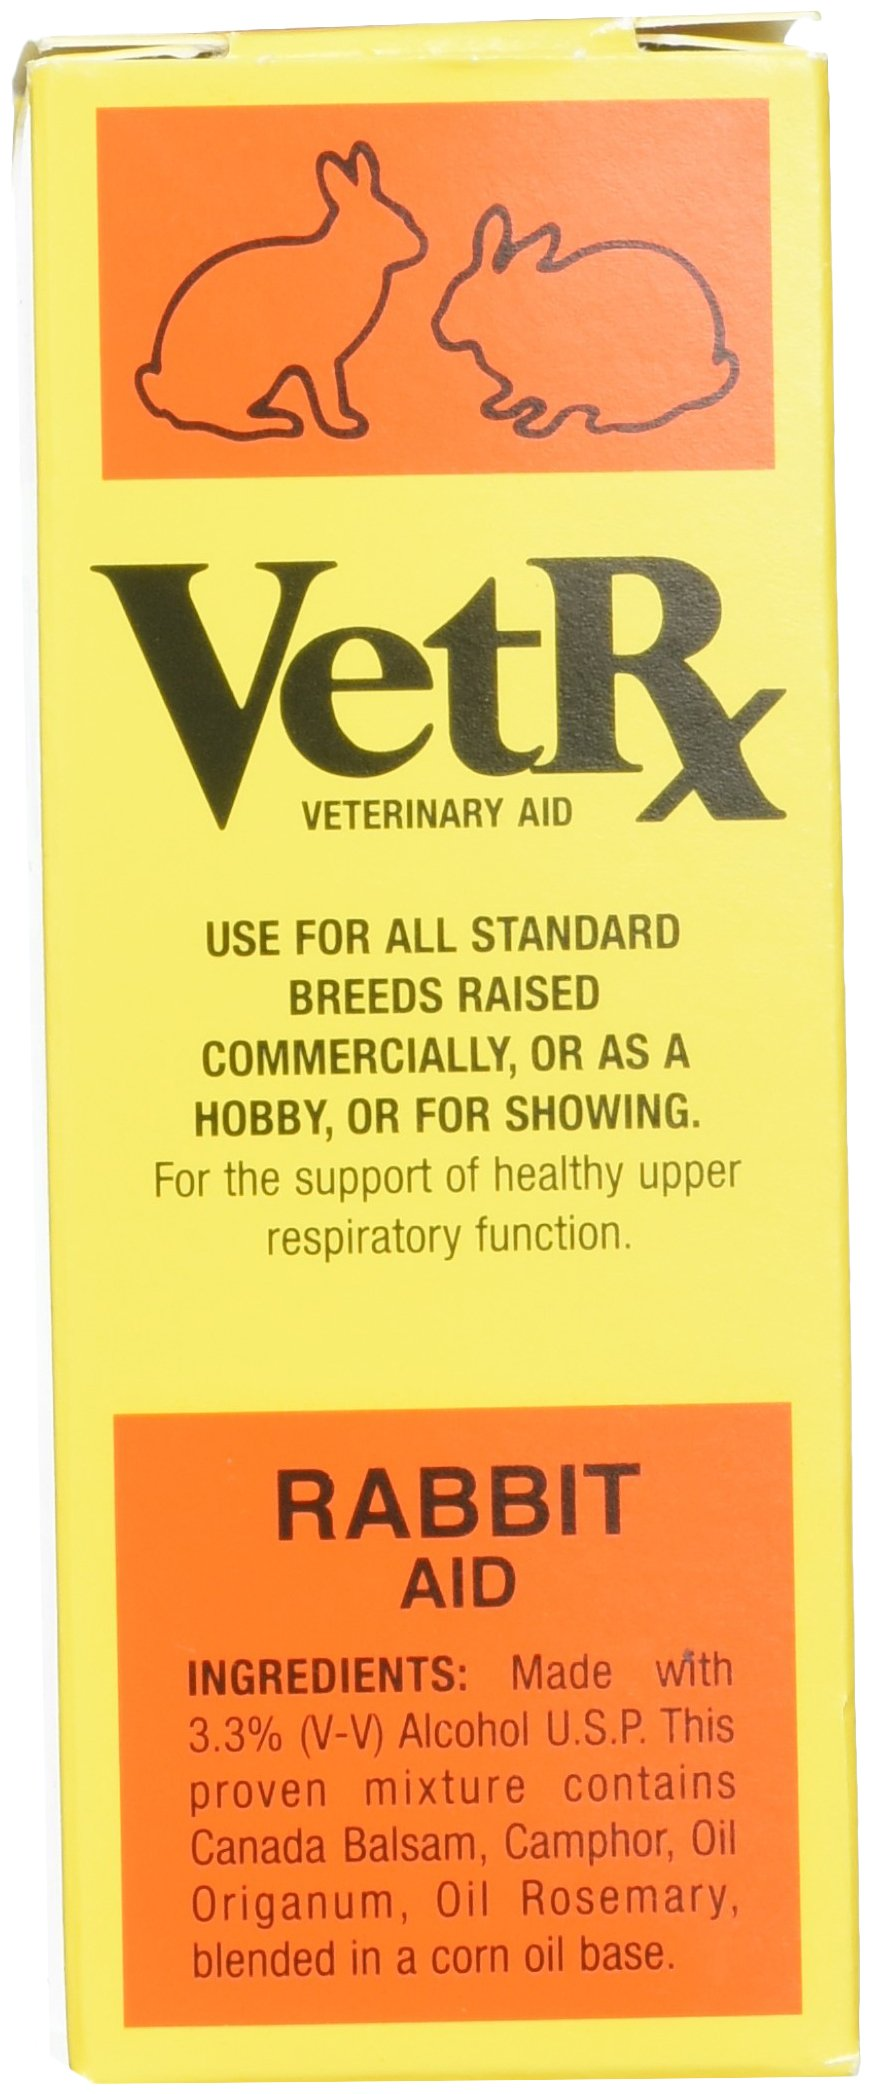 Goodwinol Products Corp. Vetrx Rabbit Veterinary Aid 2 Oz for all Standard Breeds